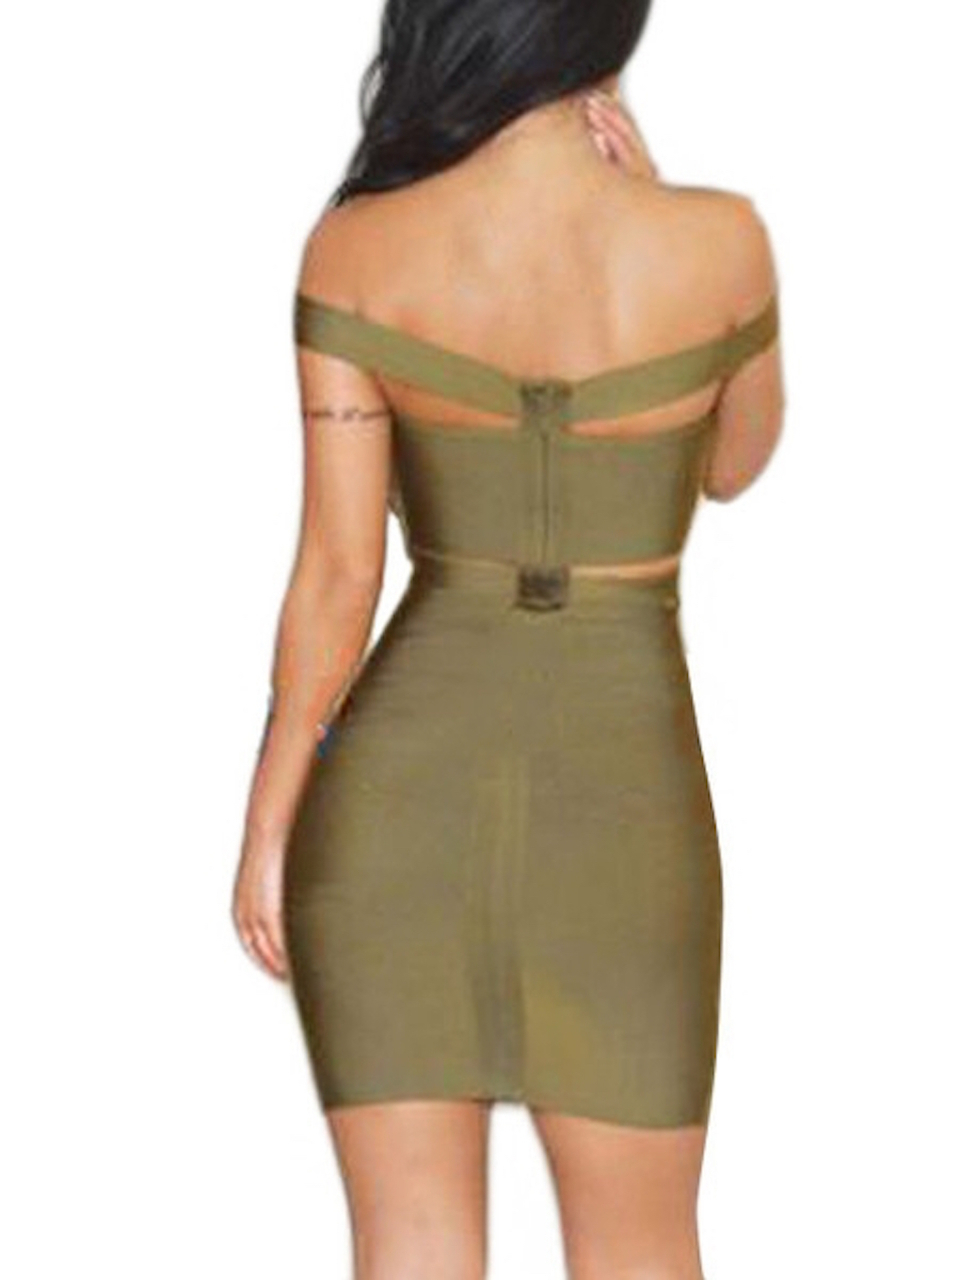 Olive Green Off the Shoulder Celeb Inspired Cut Out Bandage Dress